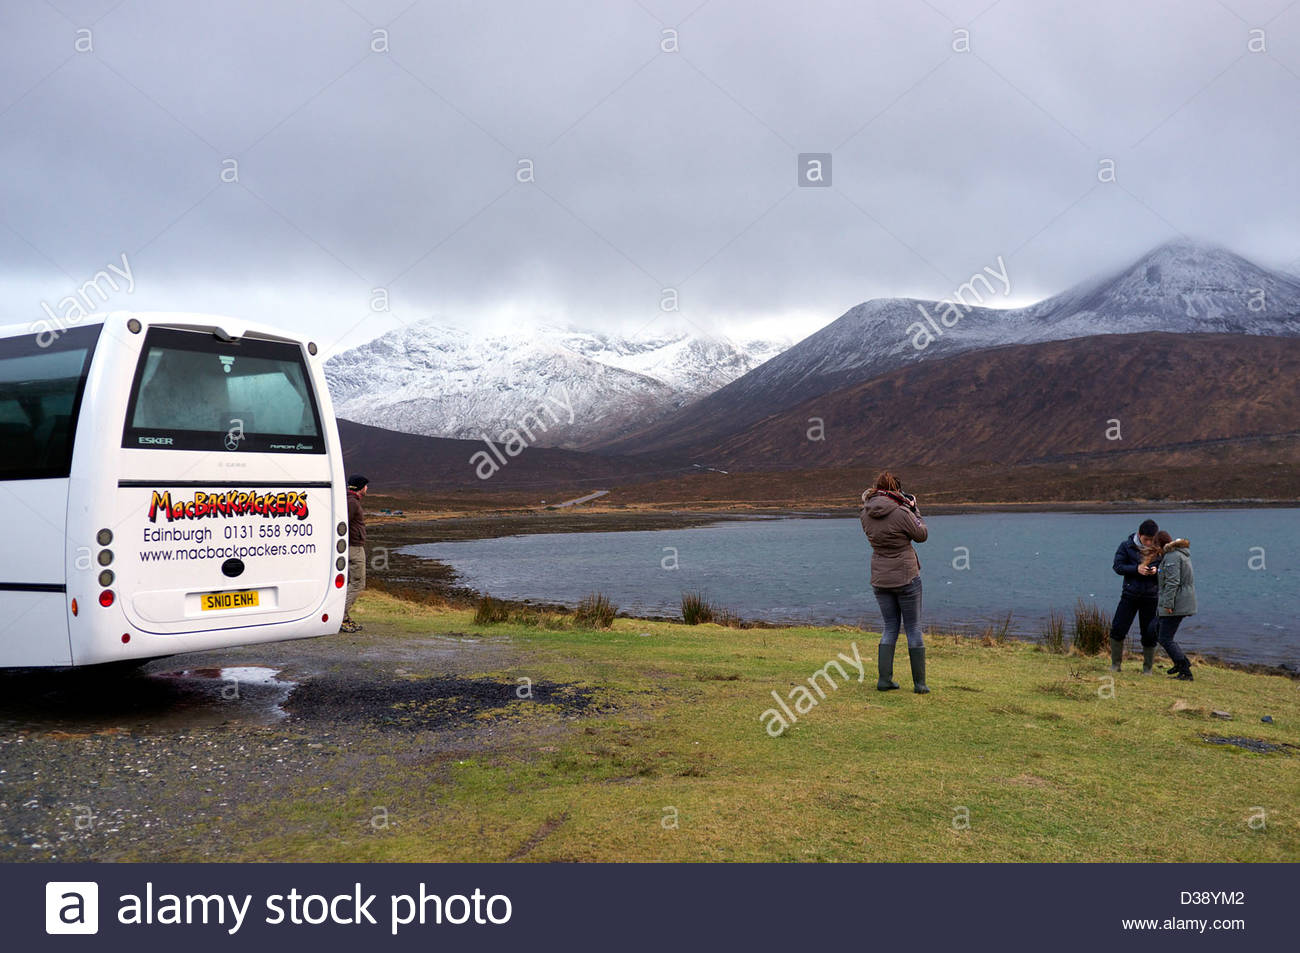 A backpackers tour bus stops off to allow the tourists to enjoy the wild Isle of Skye scenery, during winter 2013. - Stock Image